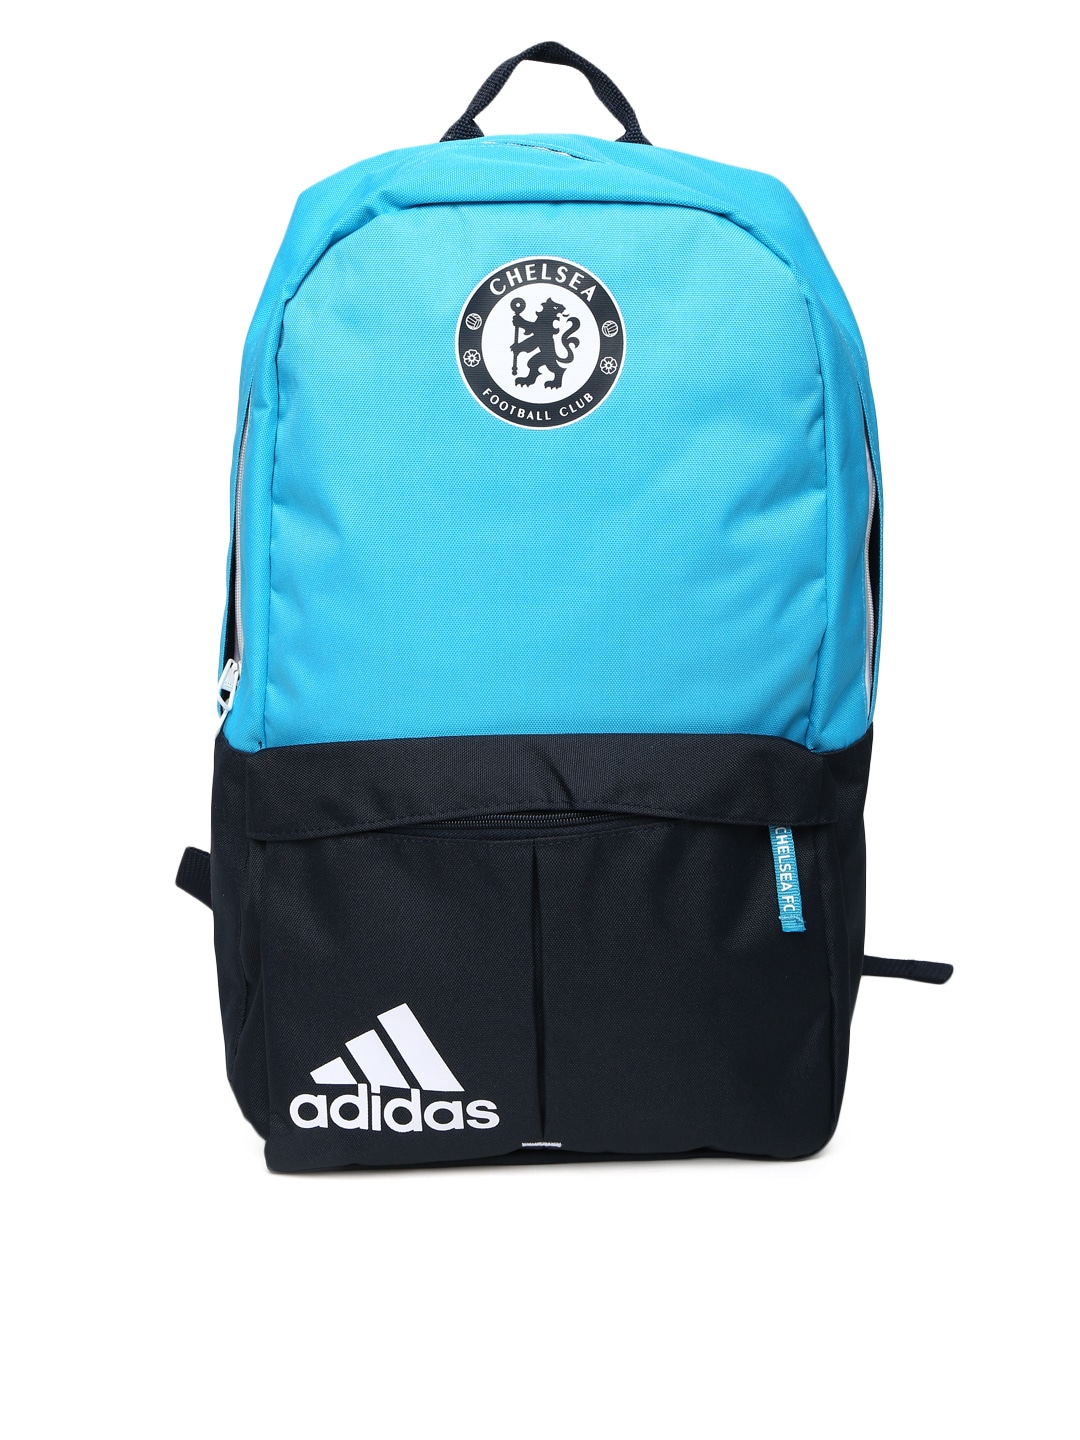 Adidas g90171 Unisex Blue Chelsea Football Club Backpack- Price in India 62ac4b486b103